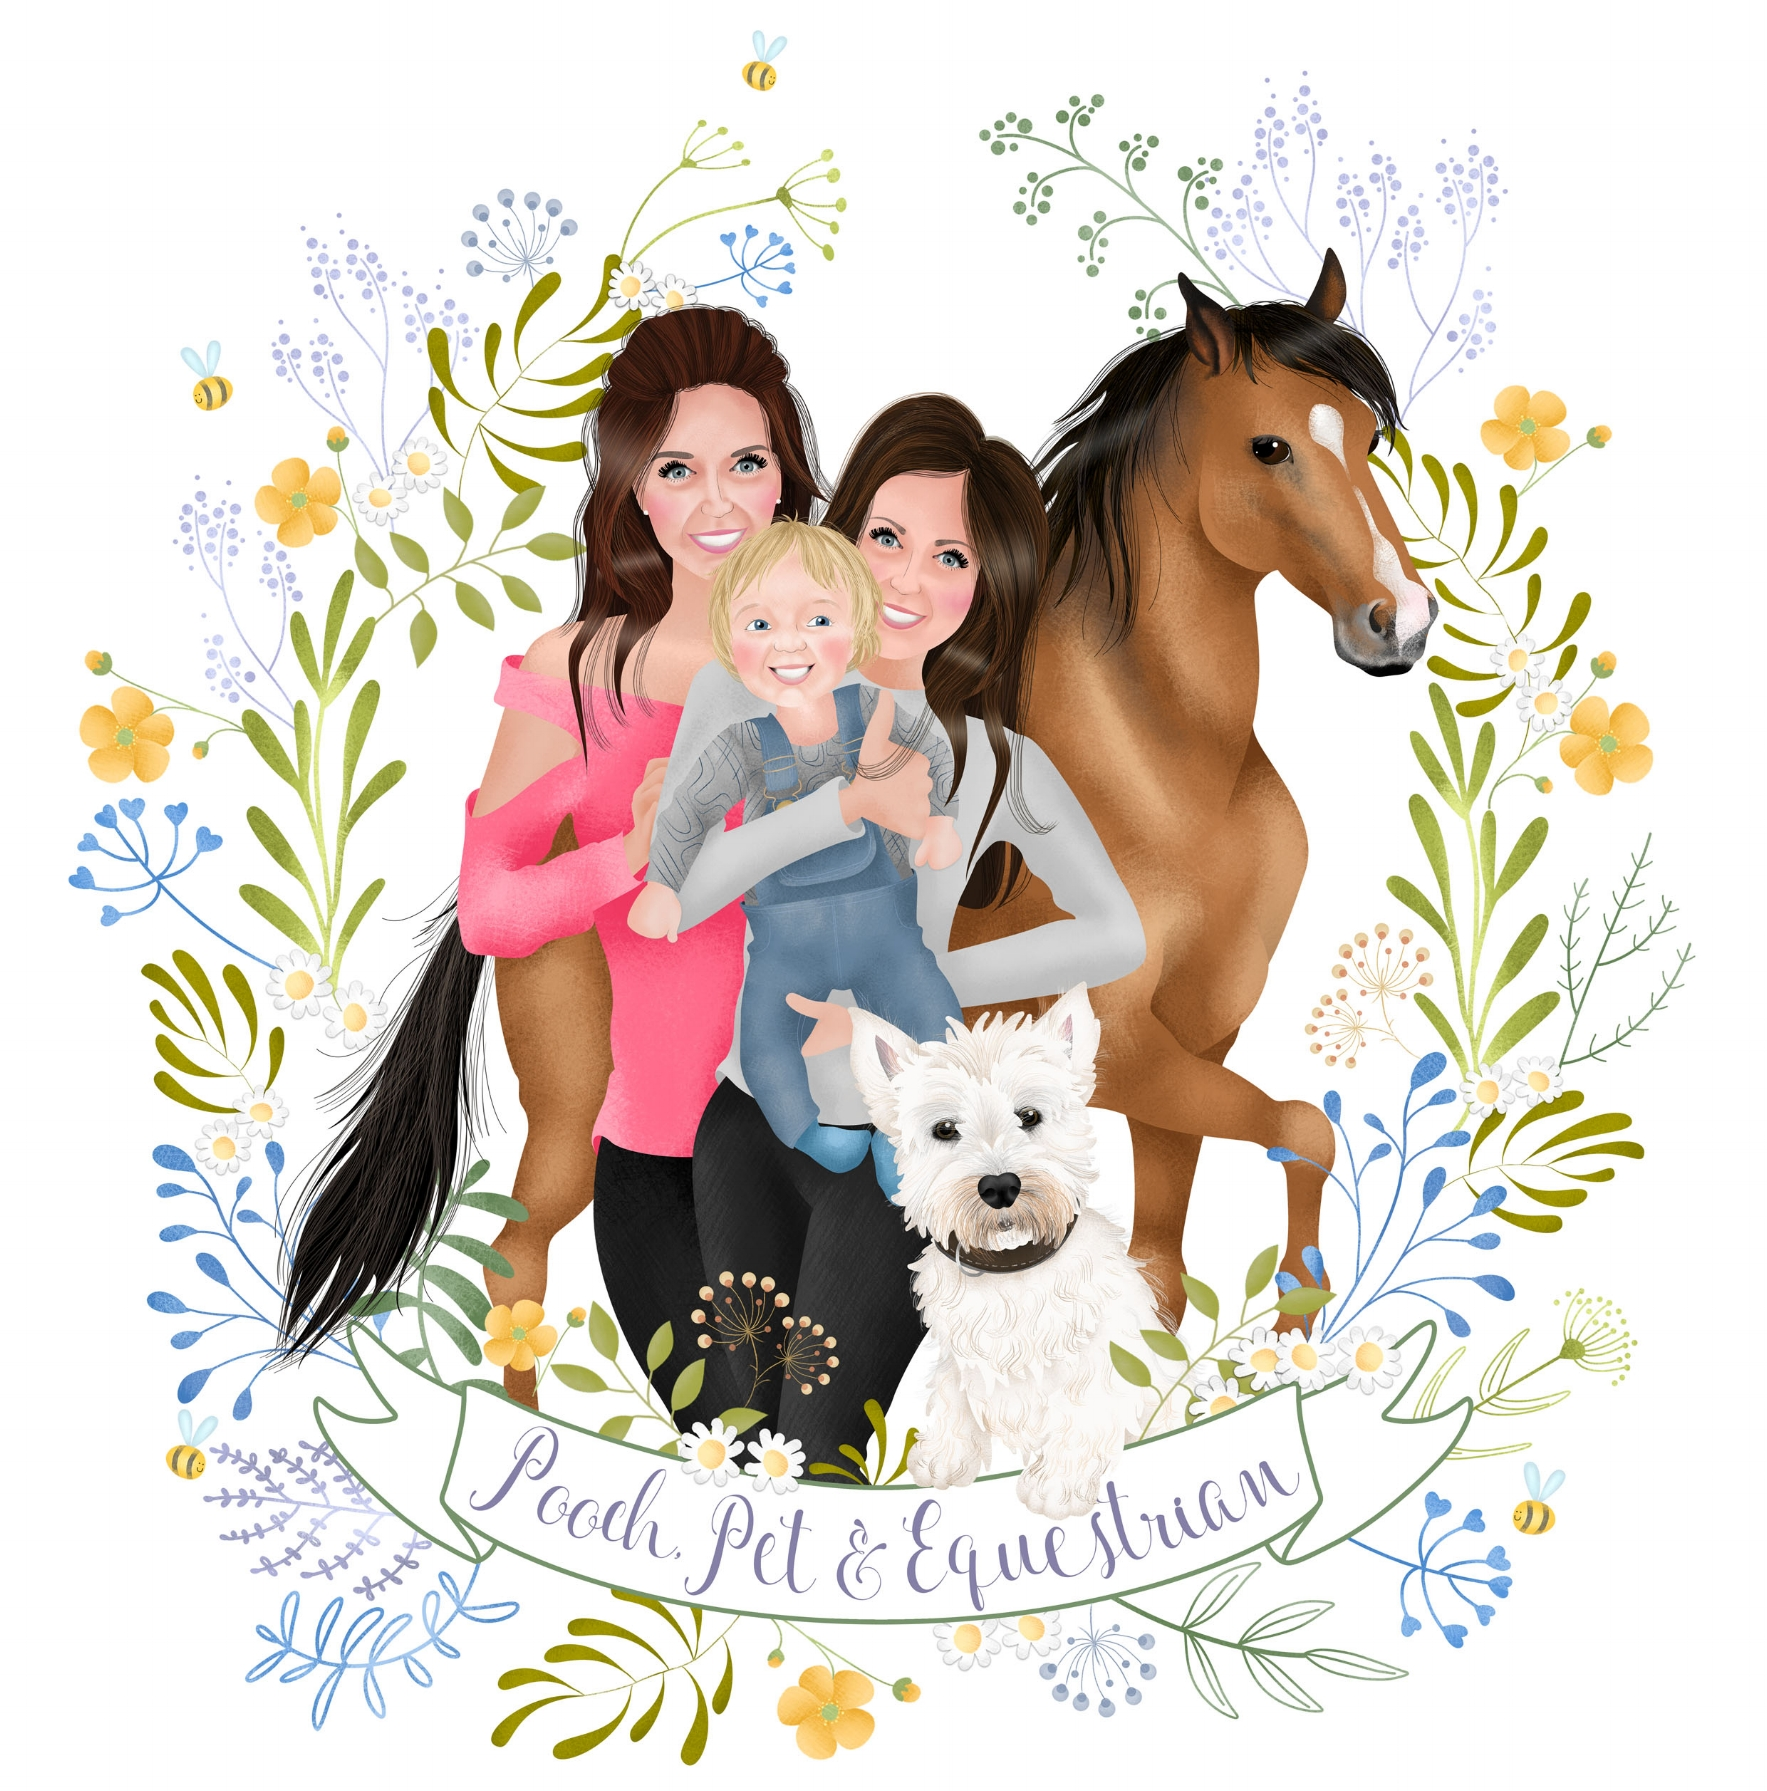 POOCH PET AND EQUESTRIAN - BESPOKE ILLUSTRATION - A4.jpg